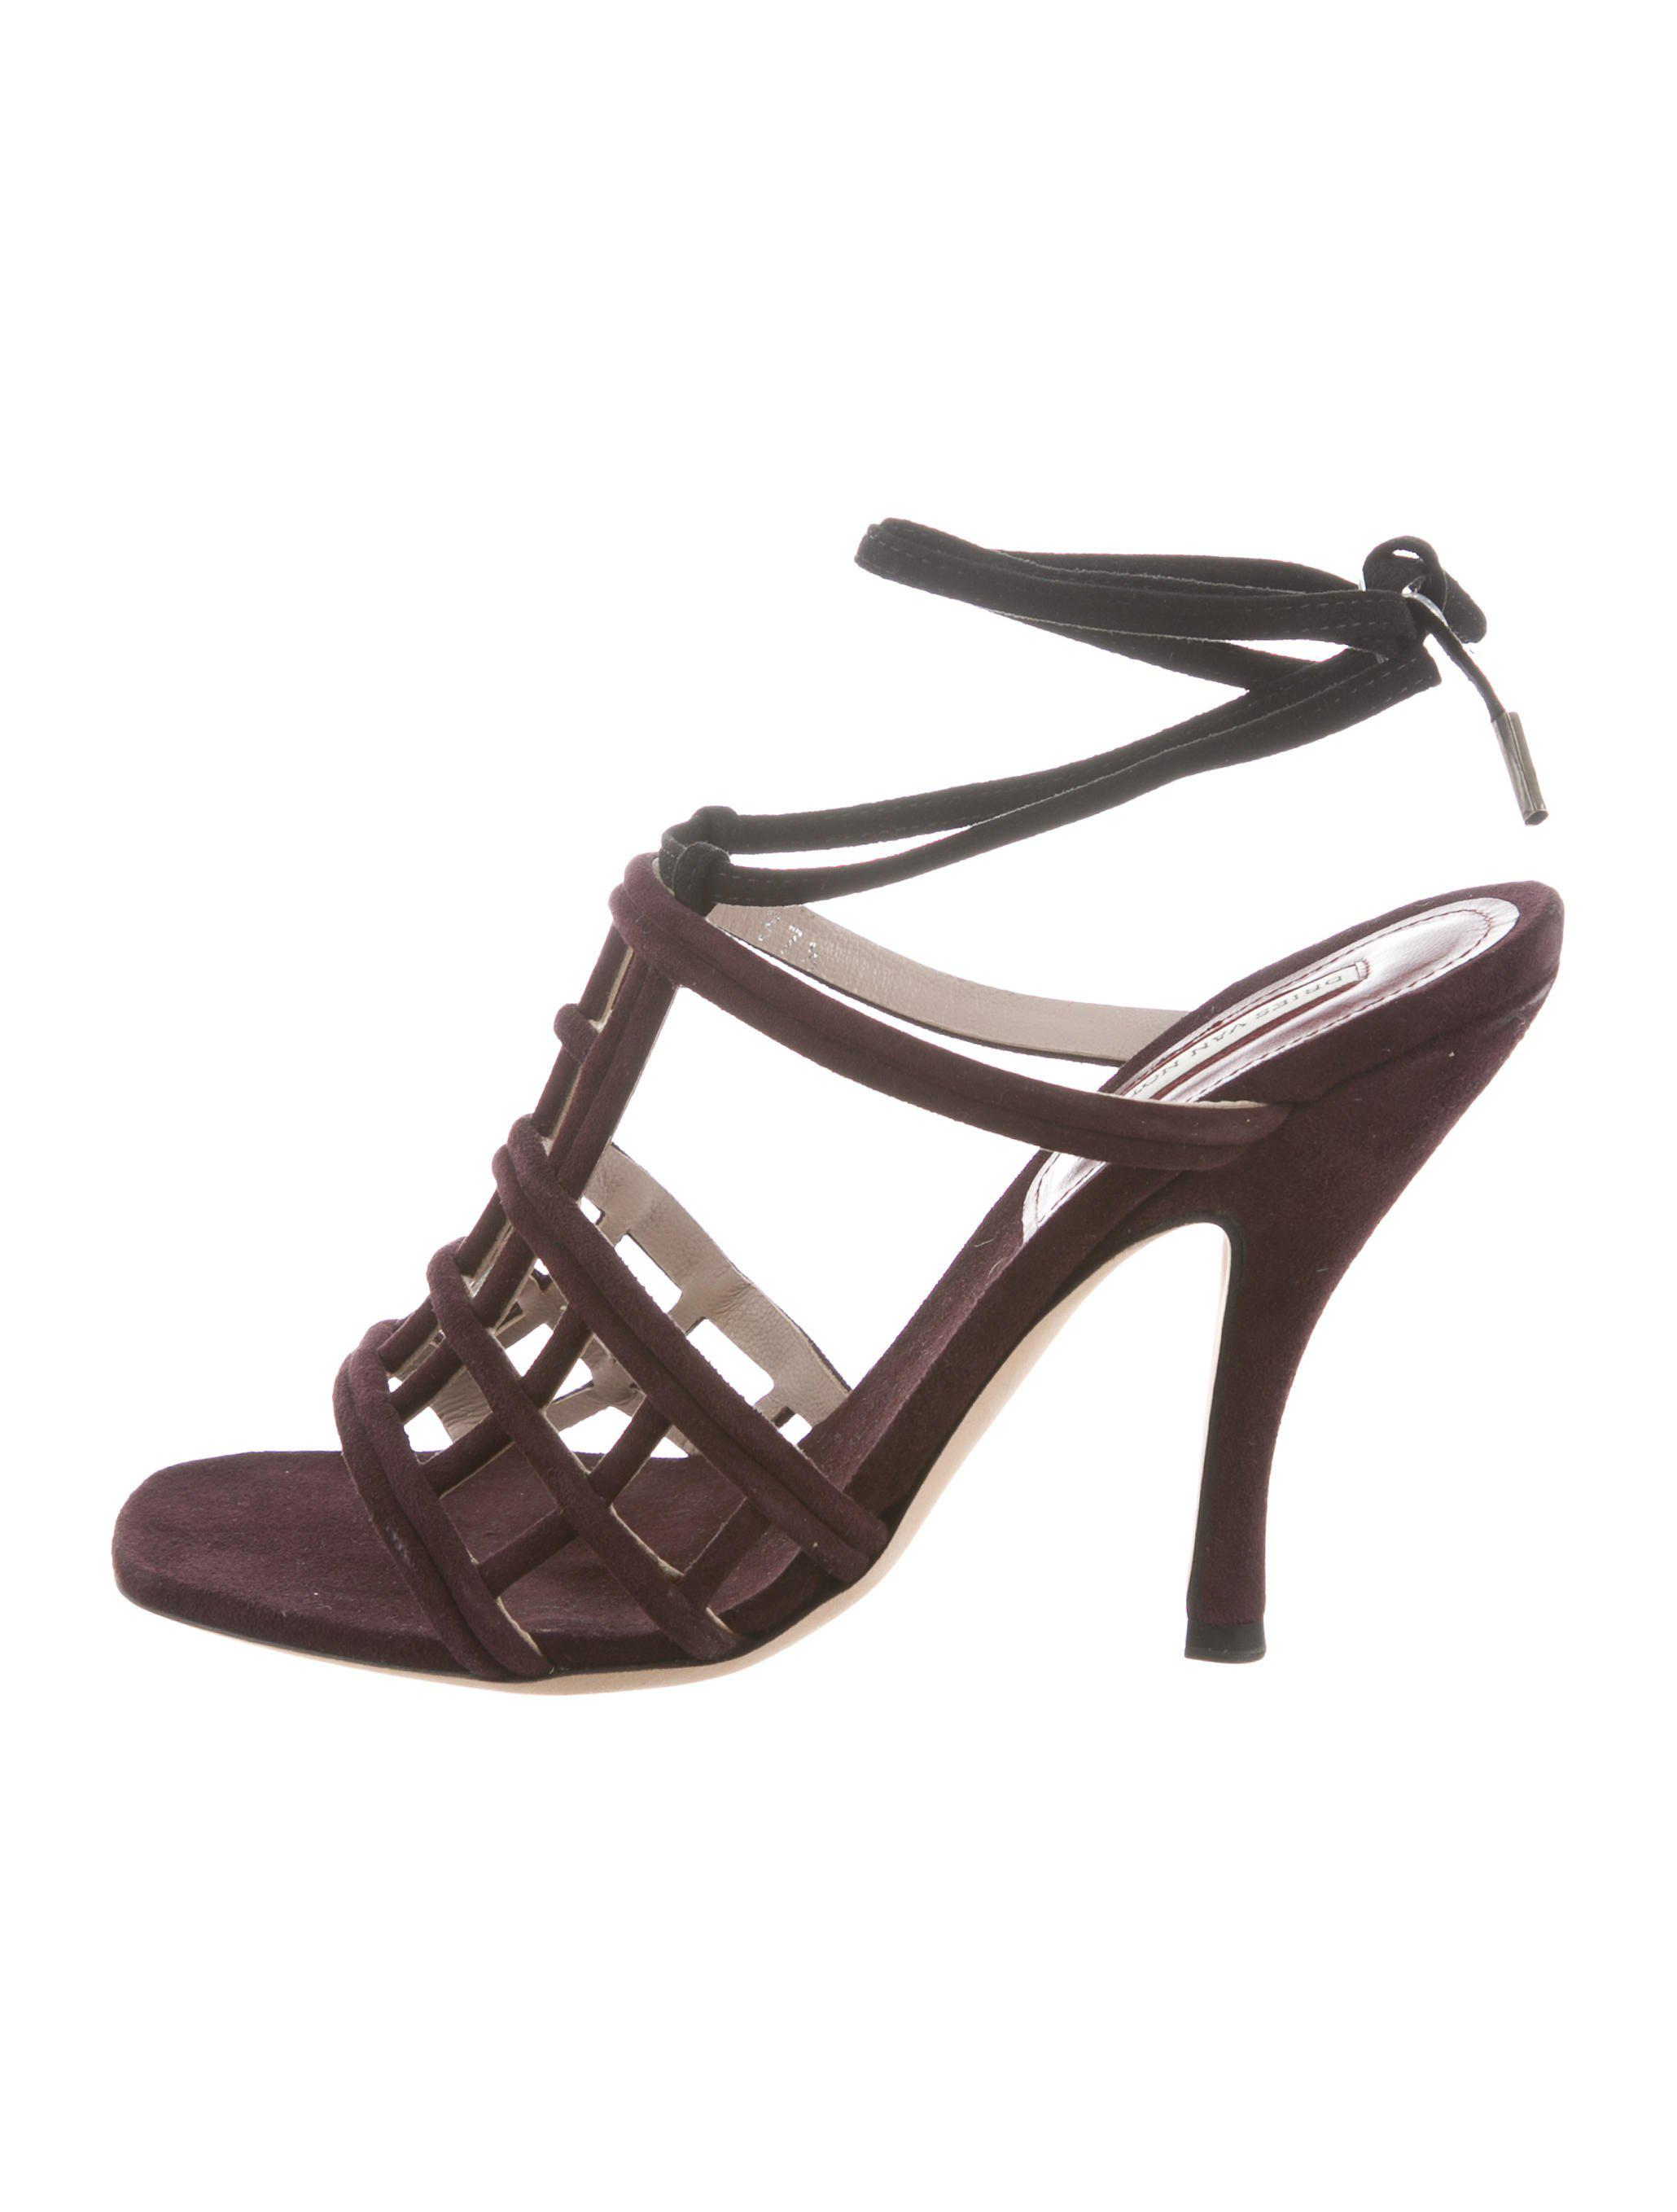 outlet affordable Dries Van Noten Suede Cutout Sandals discount codes really cheap QymUY0